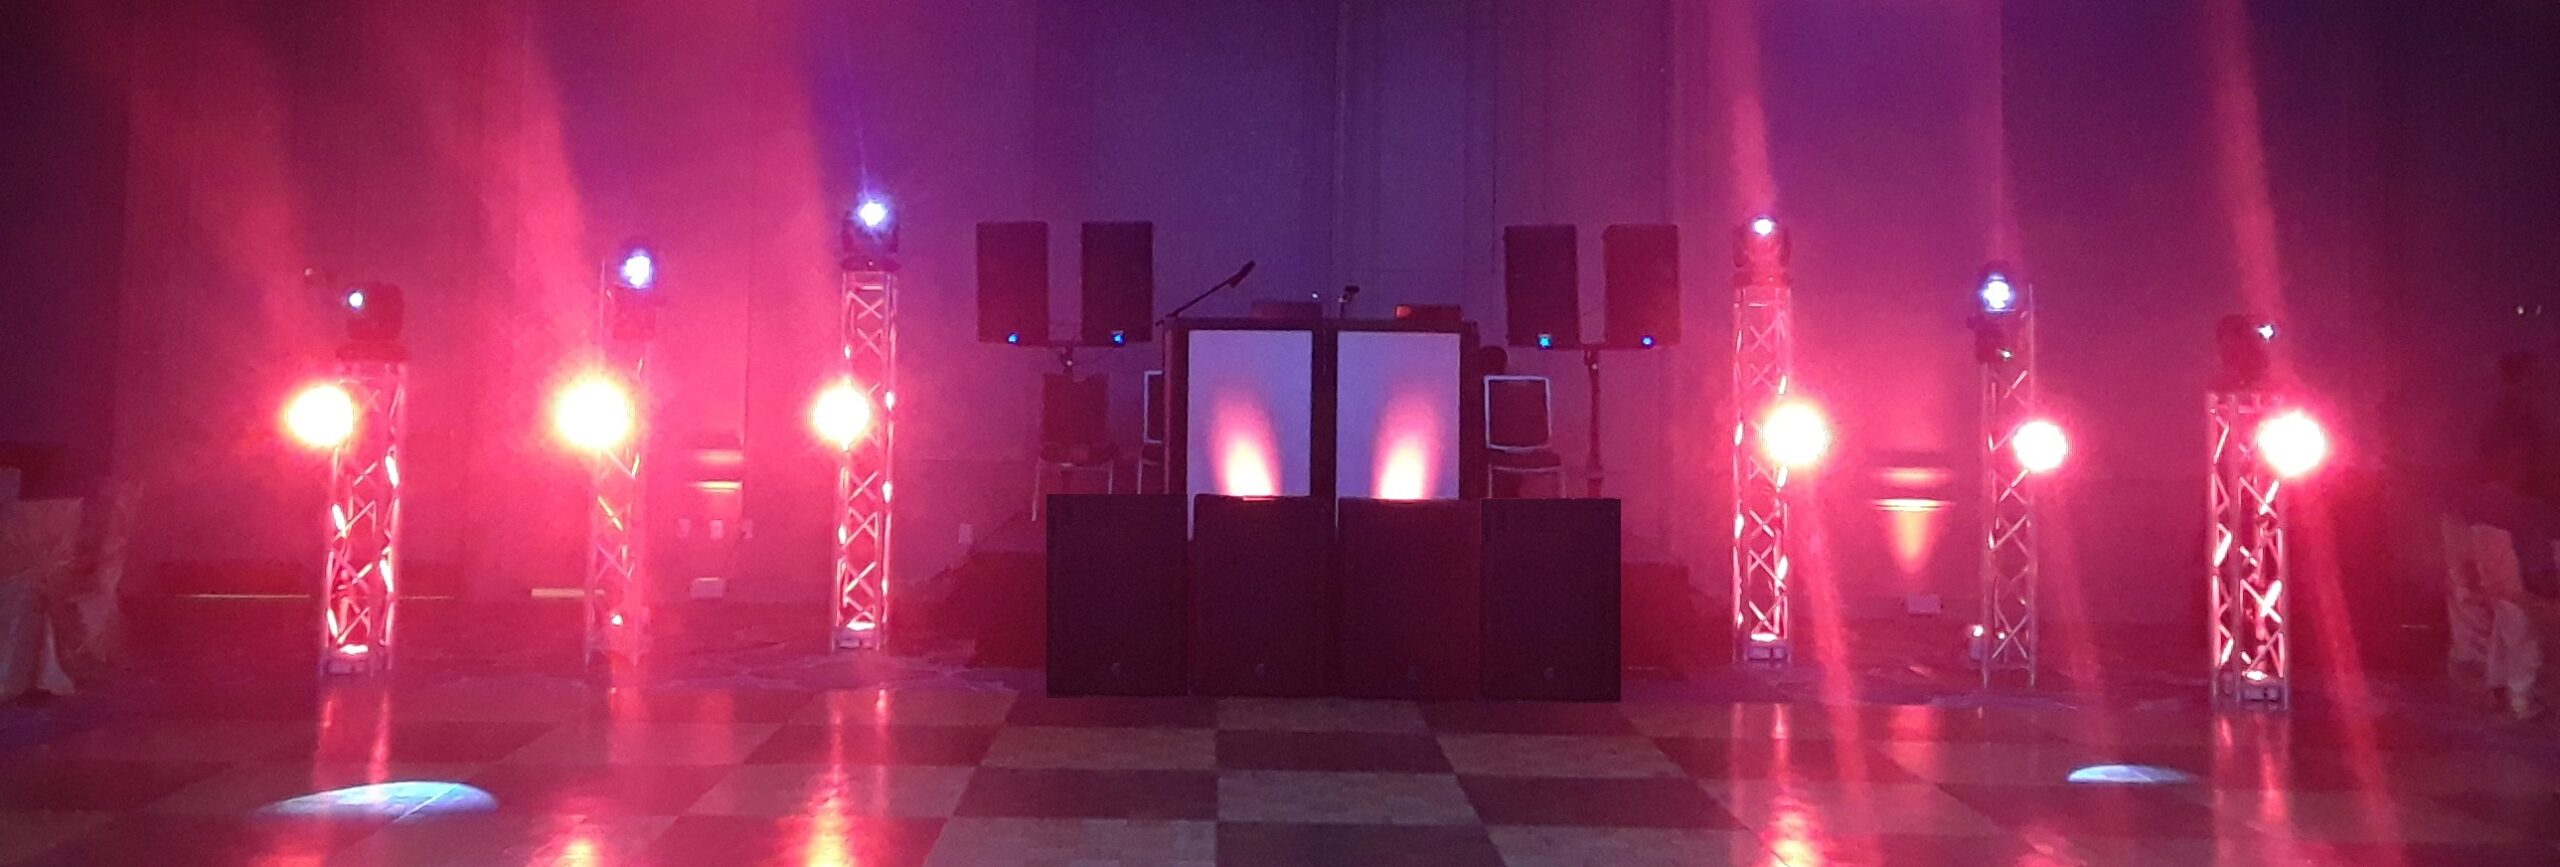 Houston DJ, DJs in Houston, Houston Prom, High School Senior Prom, Homecoming, Dance, Senior Class, School Dance, Banquet, Sonido DJ Sammy De Houston, Awesome Music Entertainment, Awesome Event Pros, AME DJs